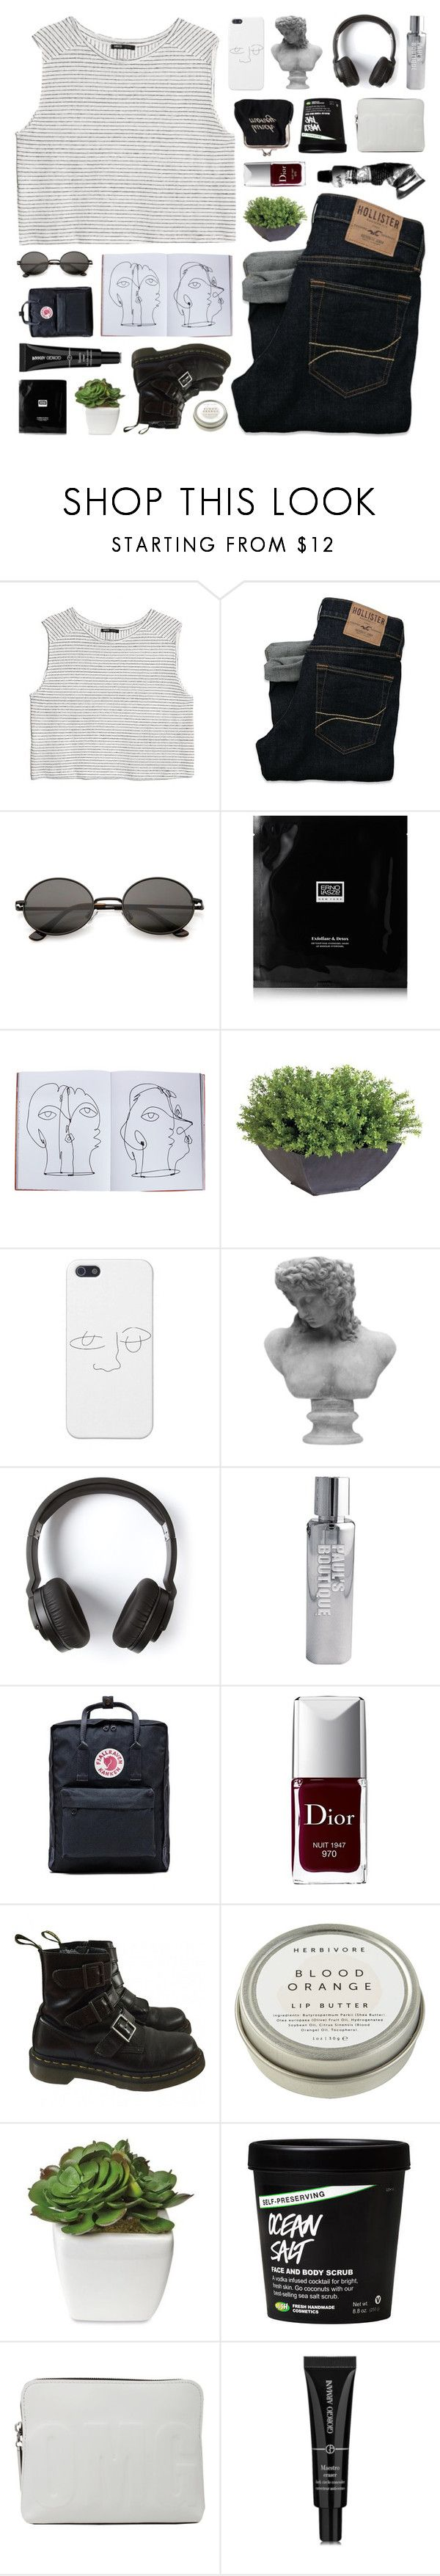 """Our love ain't water under the bridge"" by justonegirlwithdreams ❤ liked on Polyvore featuring MANGO, Hollister Co., Erno Laszlo, Assouline Publishing, Ethan Allen, Visionnaire, Nixon, Paul's Boutique, Fjällräven and Christian Dior"